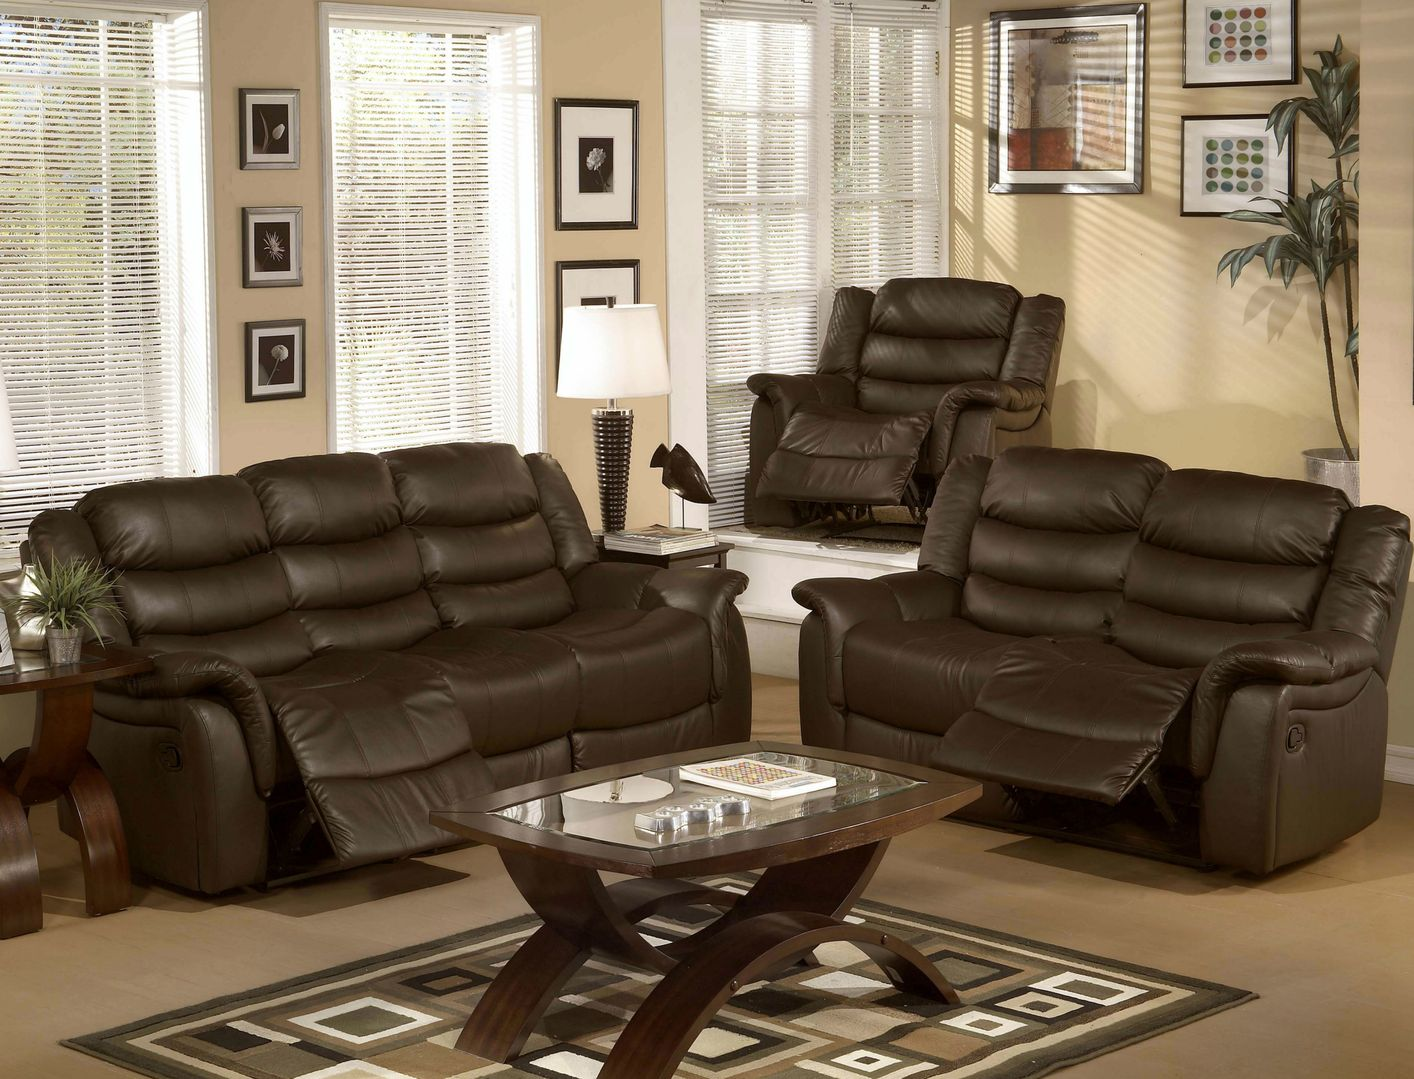 Reclining Video Game Chairs Buy Beverly FG004S Reclining Sofa, Loveseat, and Chair Set in Los ...